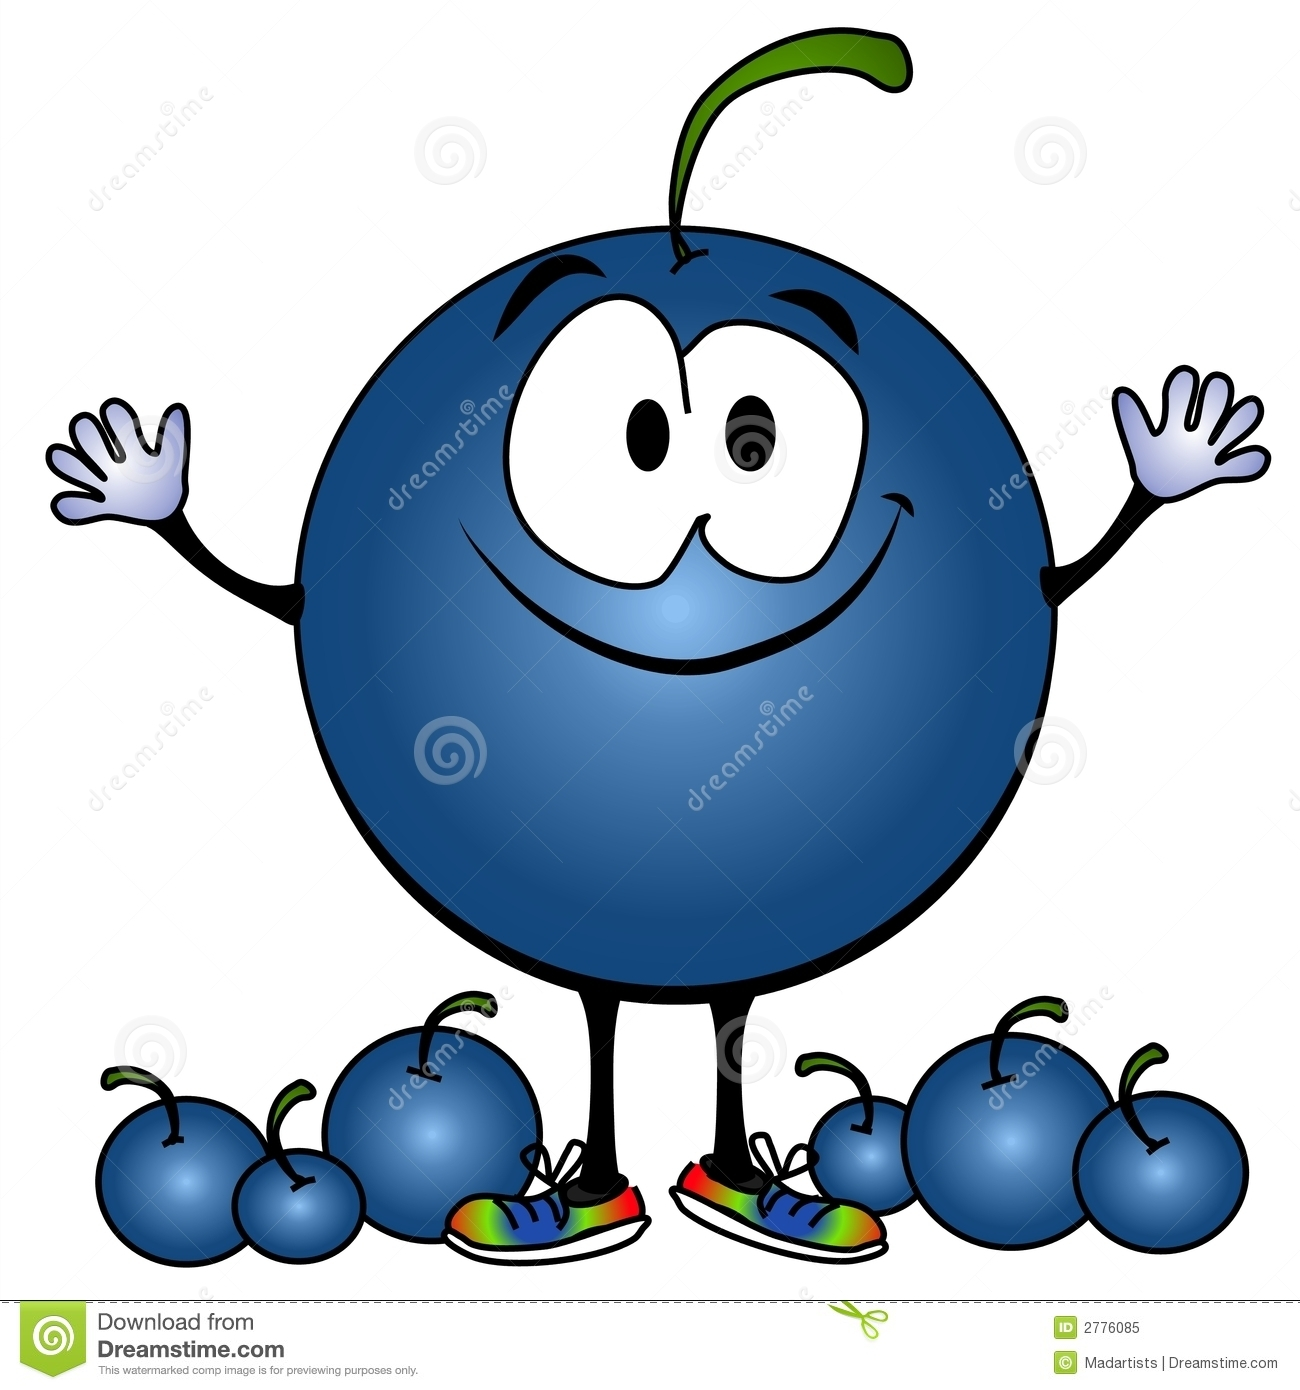 Fresh gallery digital collection. Blueberry clipart cartoon